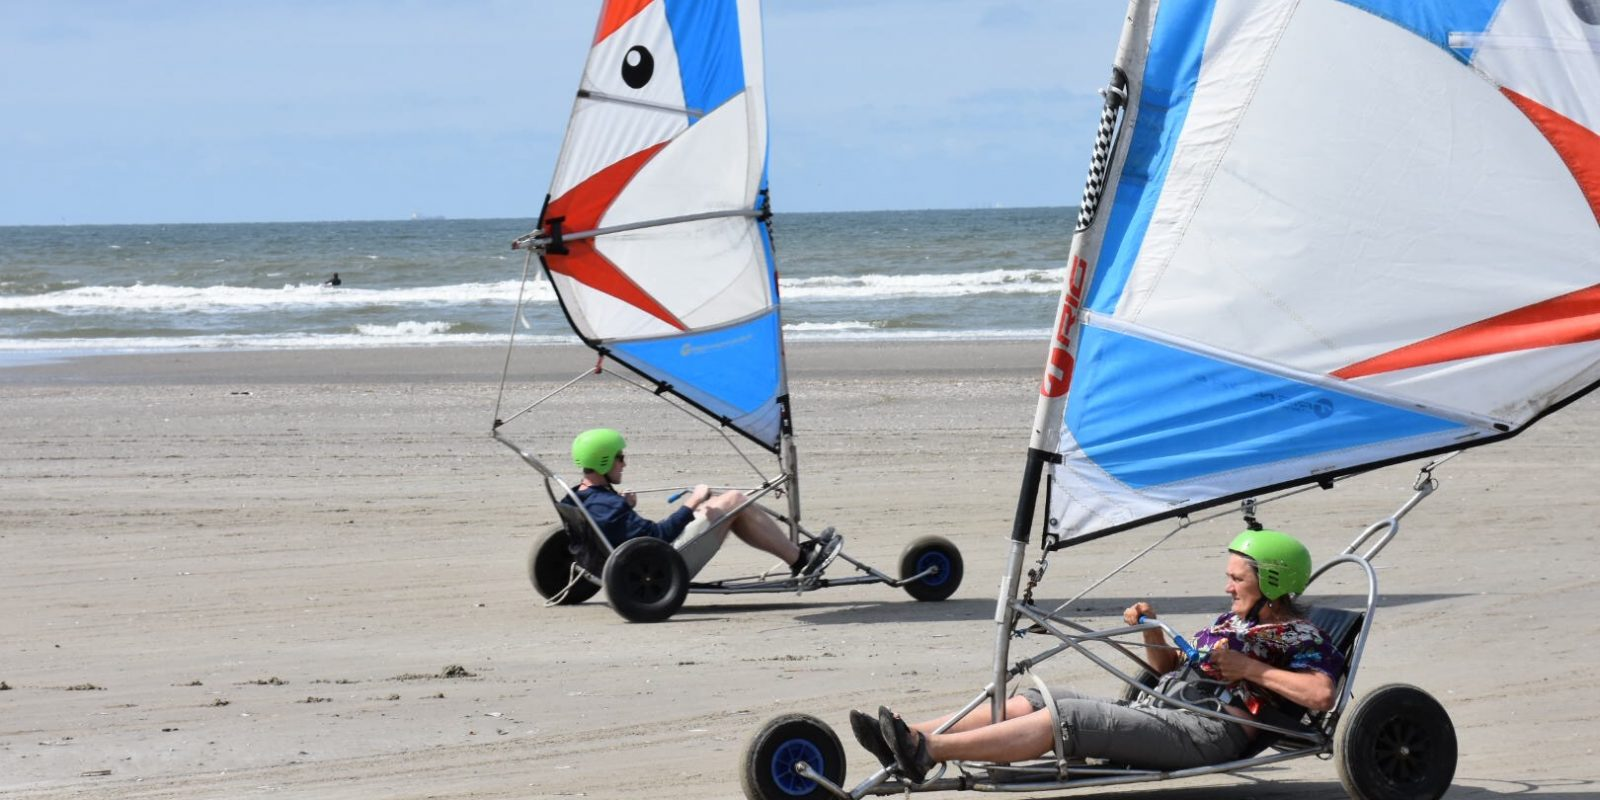 two people driving wind-powered cars on a beach shoreline